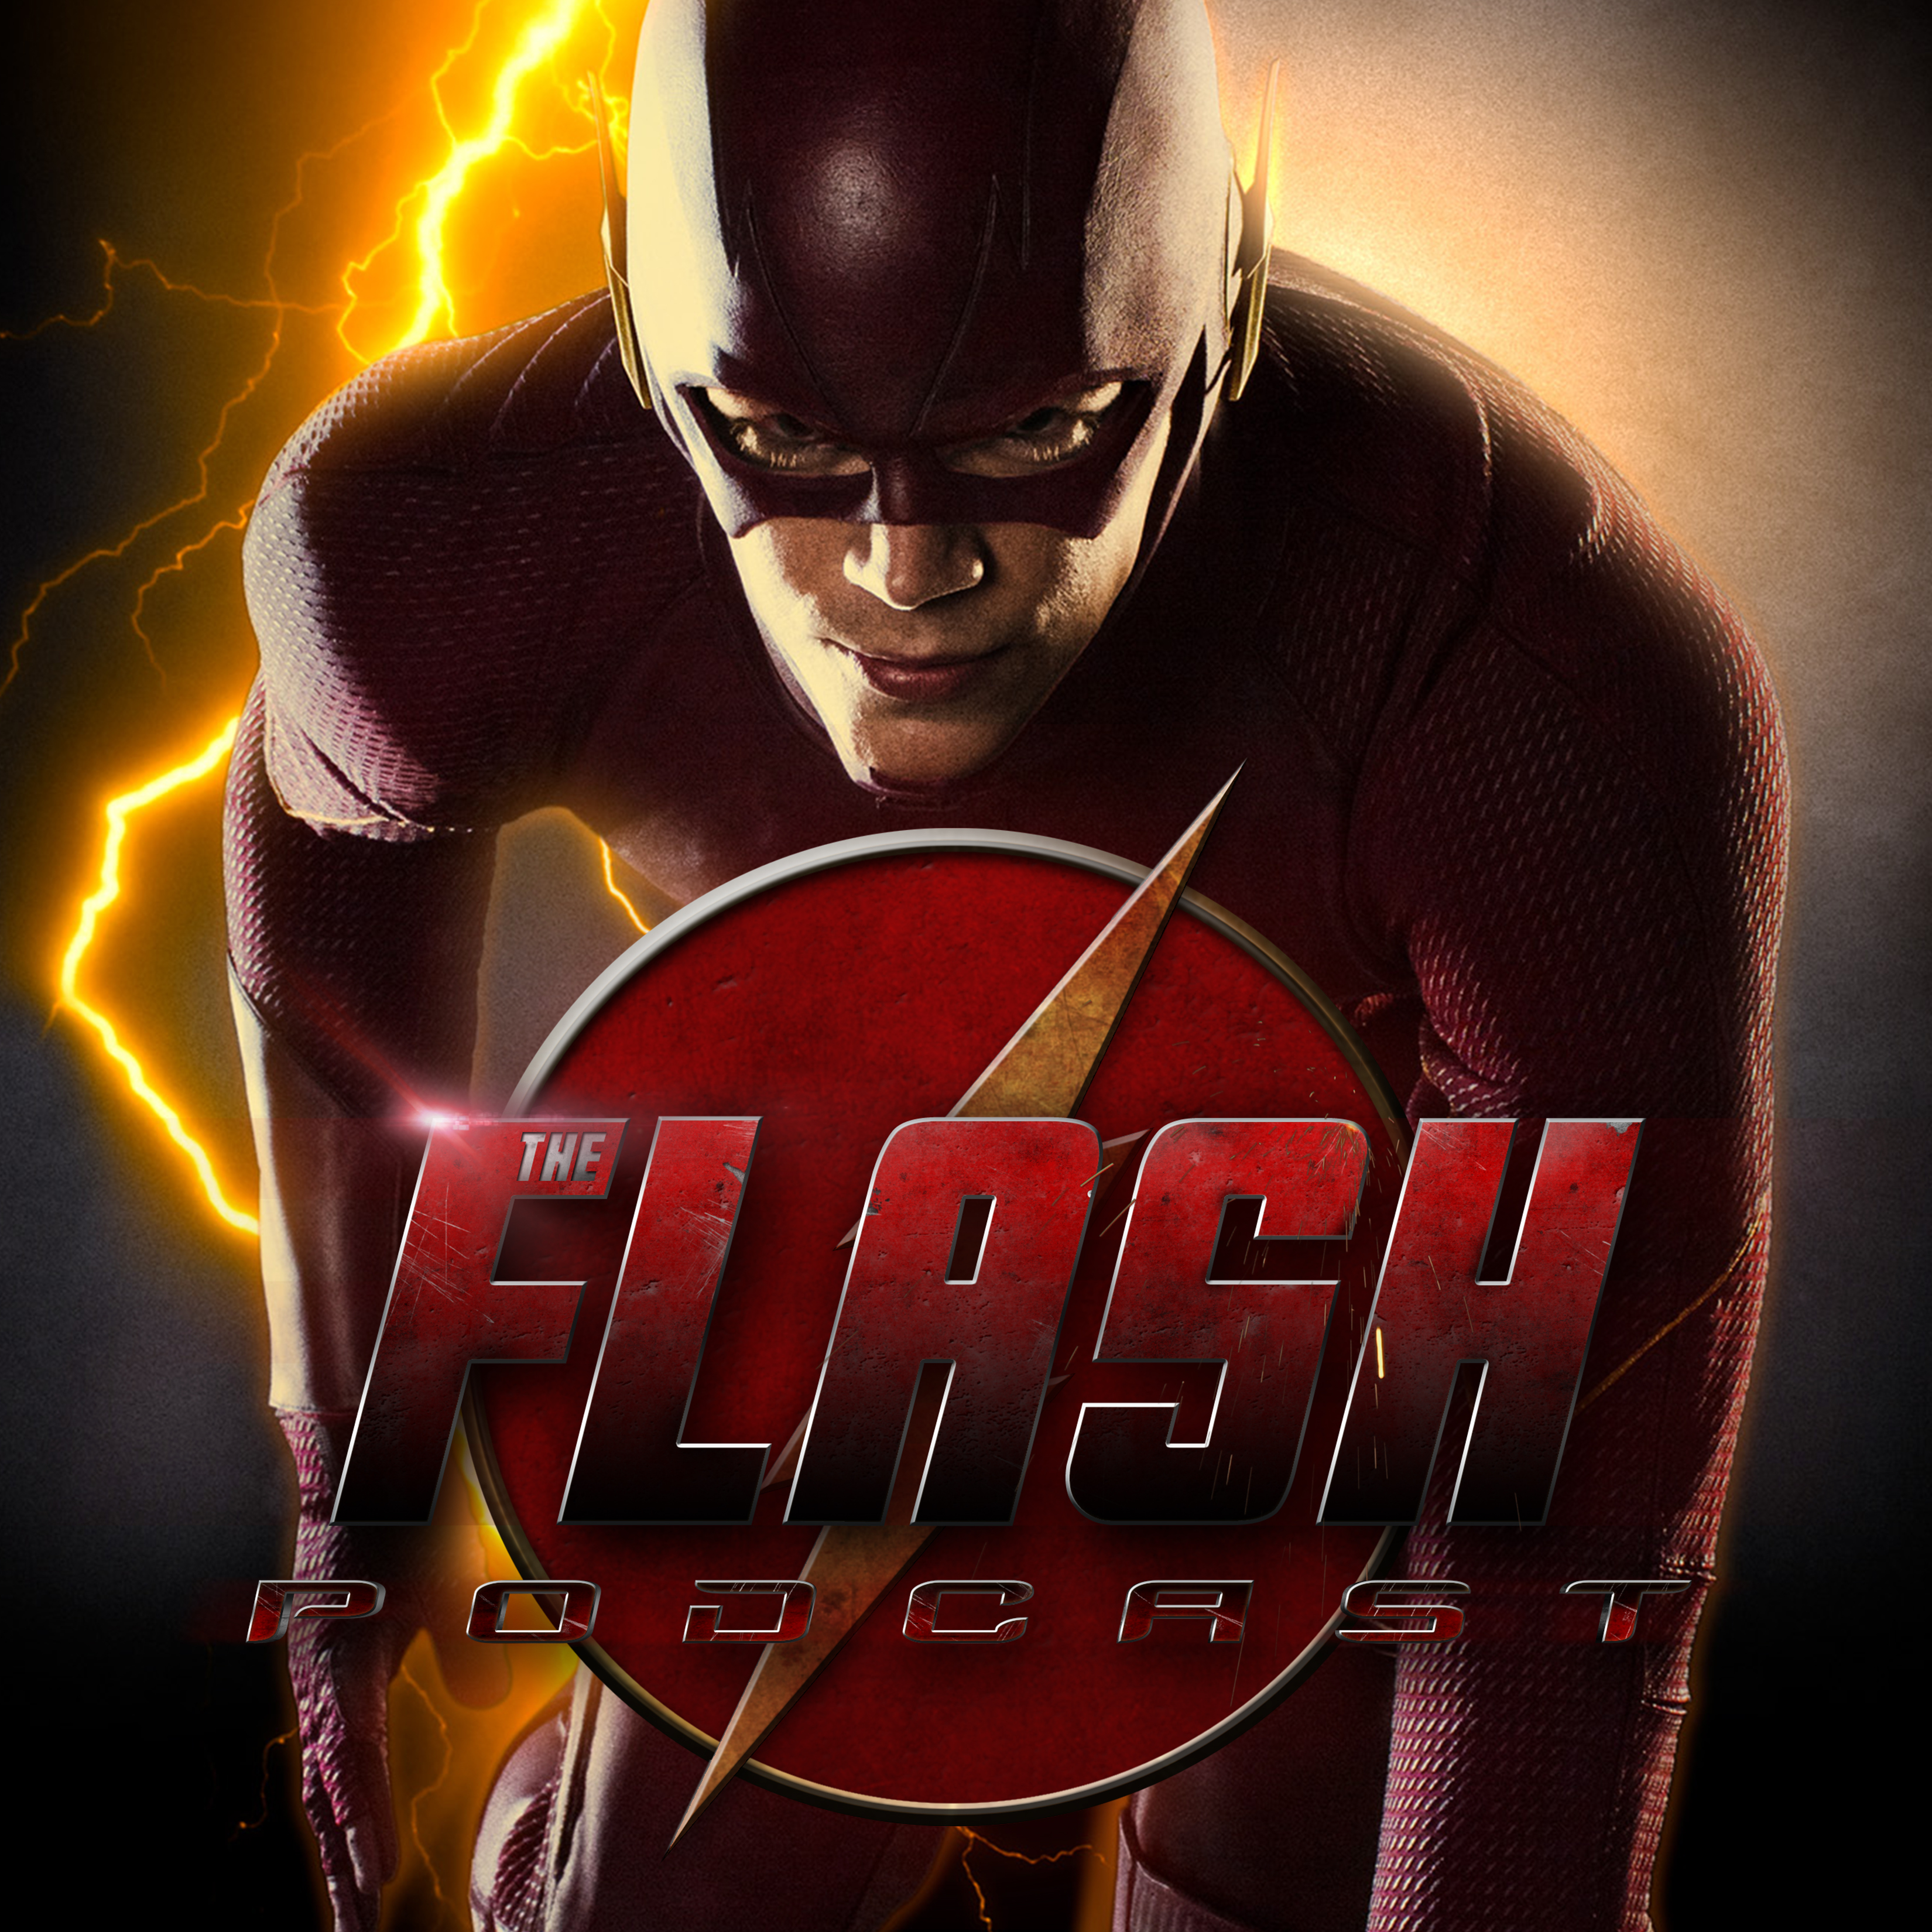 The Flash Podcast 031 - Captain Cold